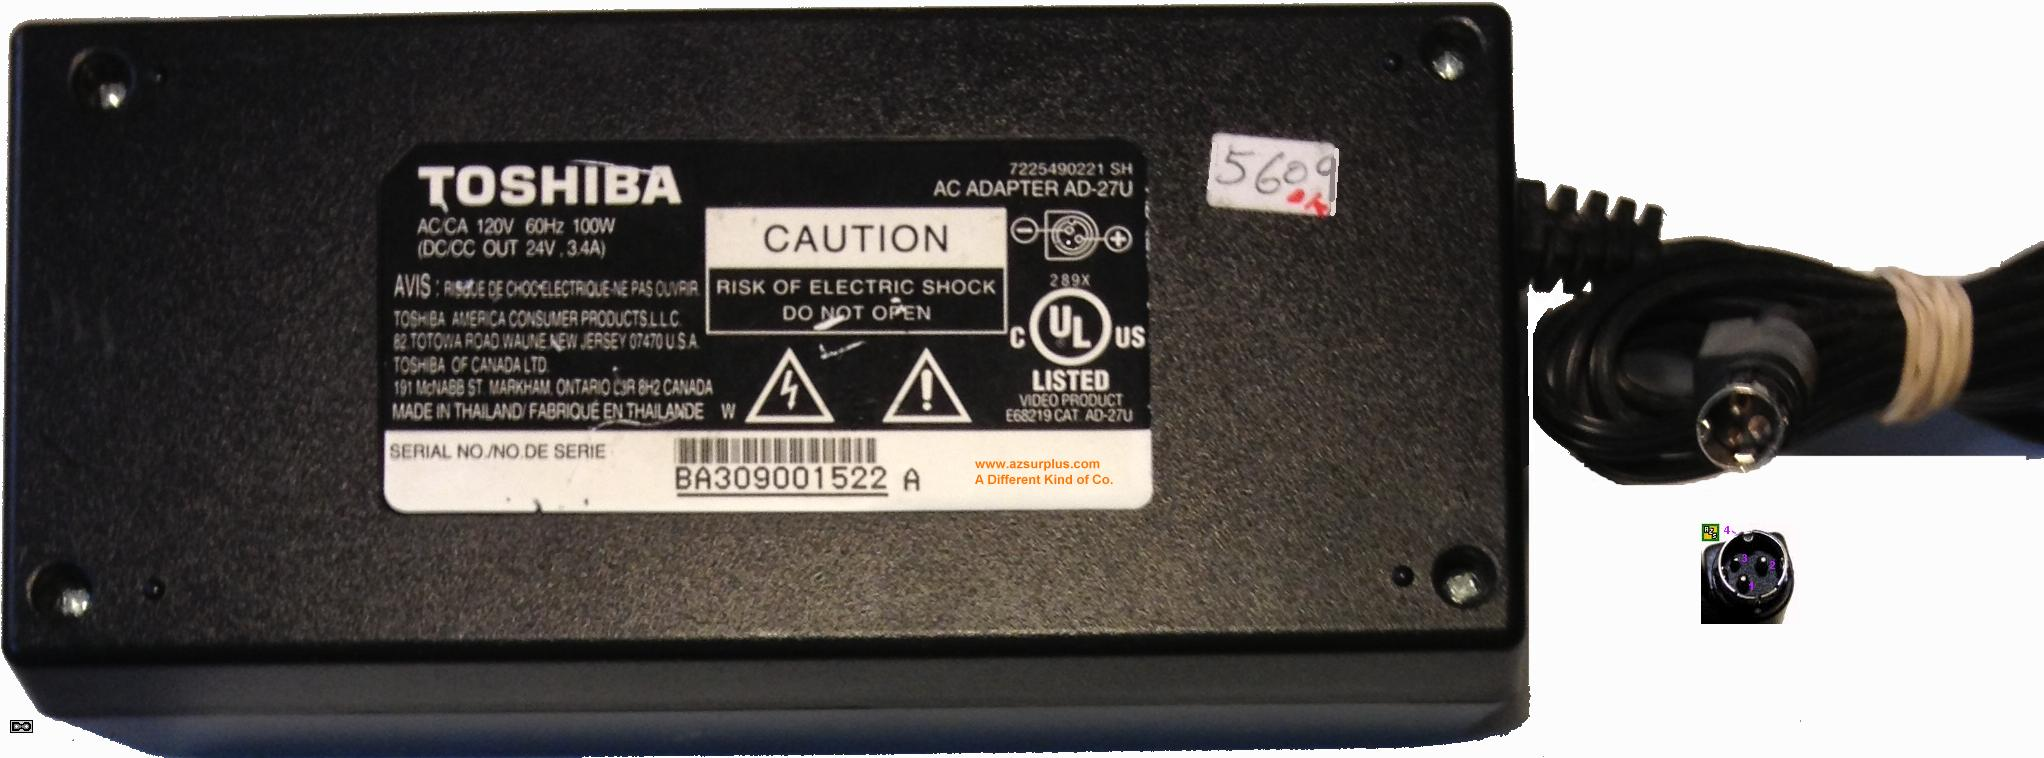 Toshiba AD-27U AC Adapter 24Vdc 3.4A Used Power supply 3 Pin Min